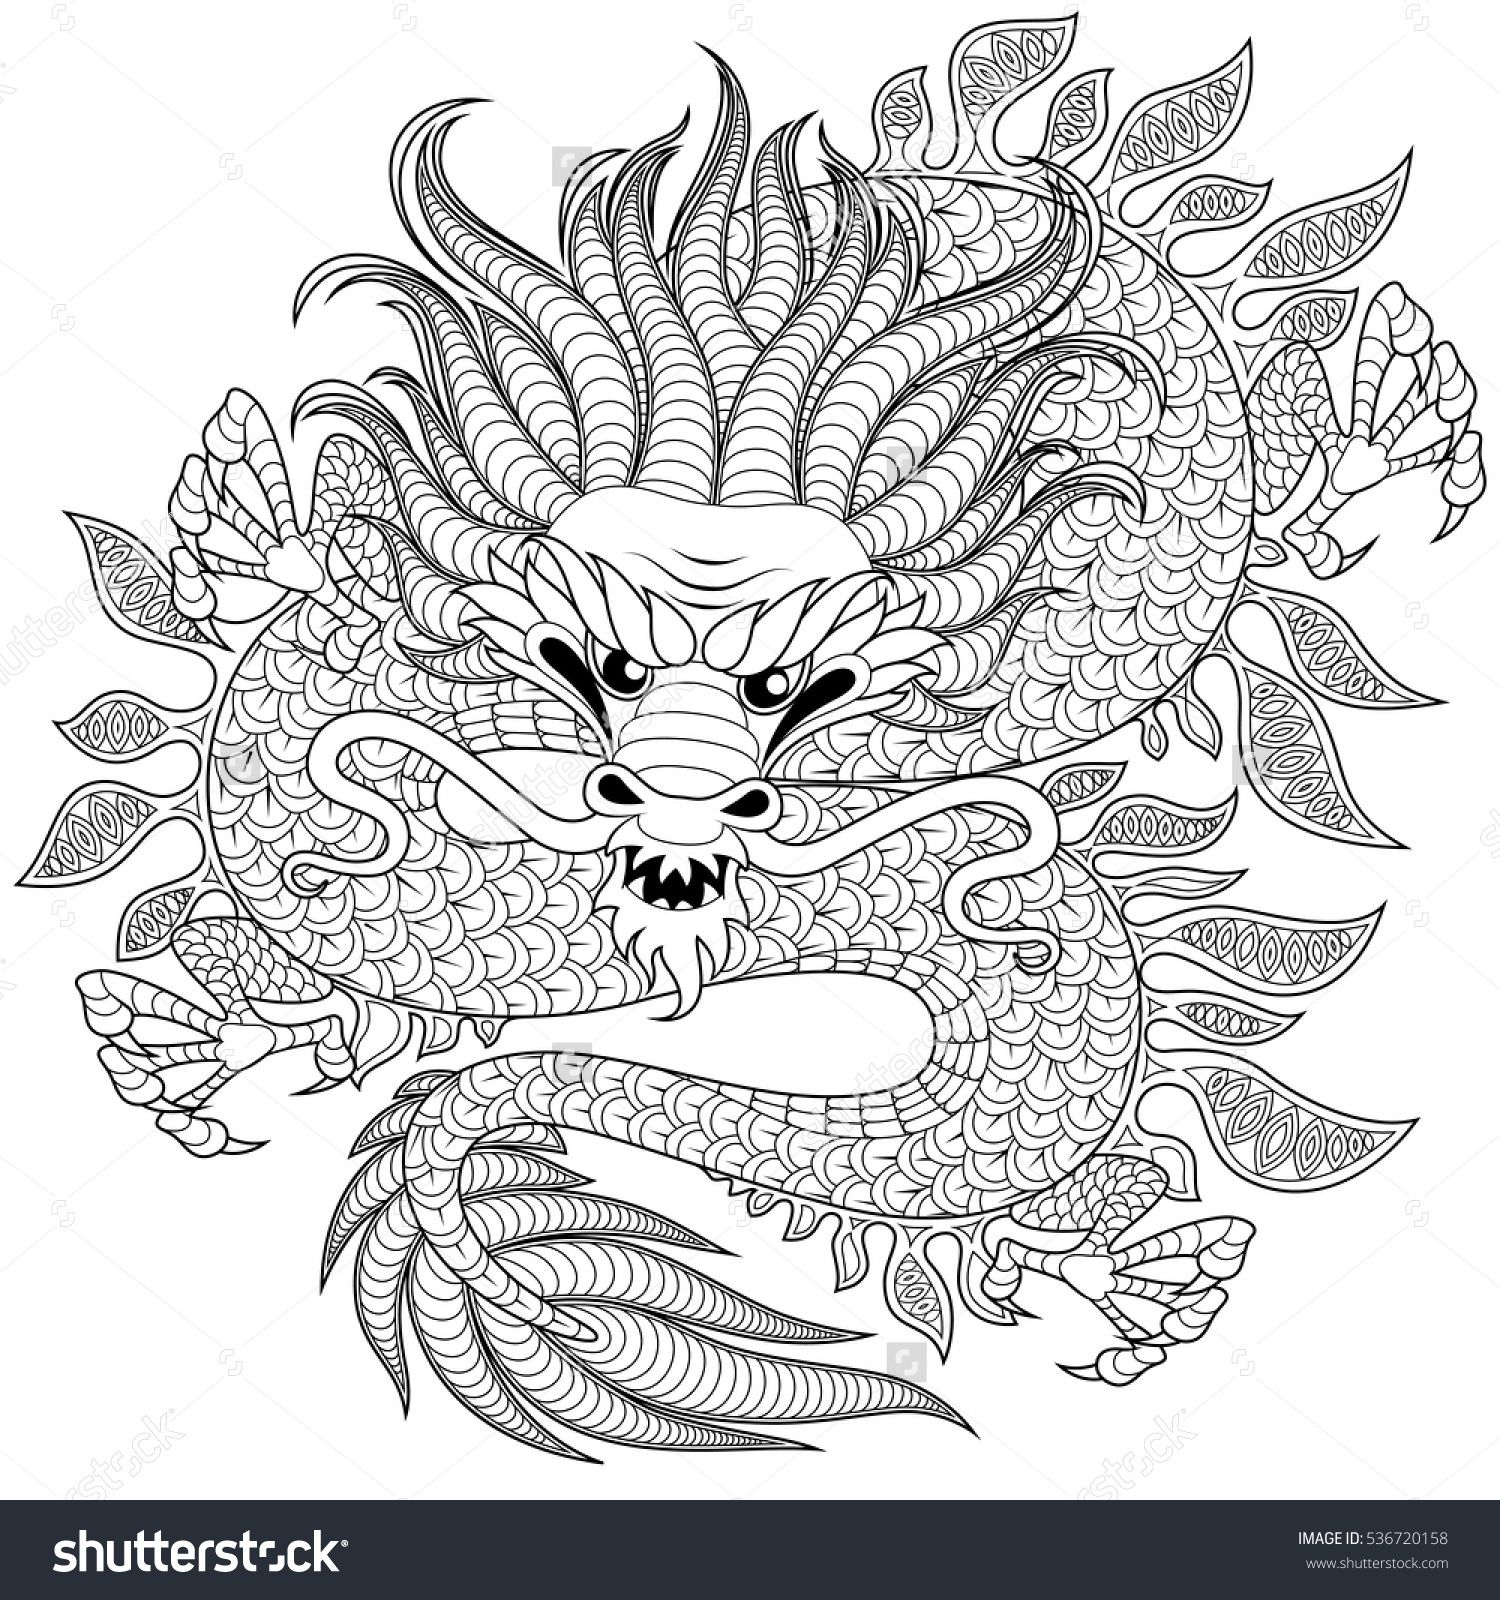 Chinese Dragon In Zentangle Style For Tatoo Adult Antistress Coloring Page Black And White Hand Drawn Doodle Book Stock Vector